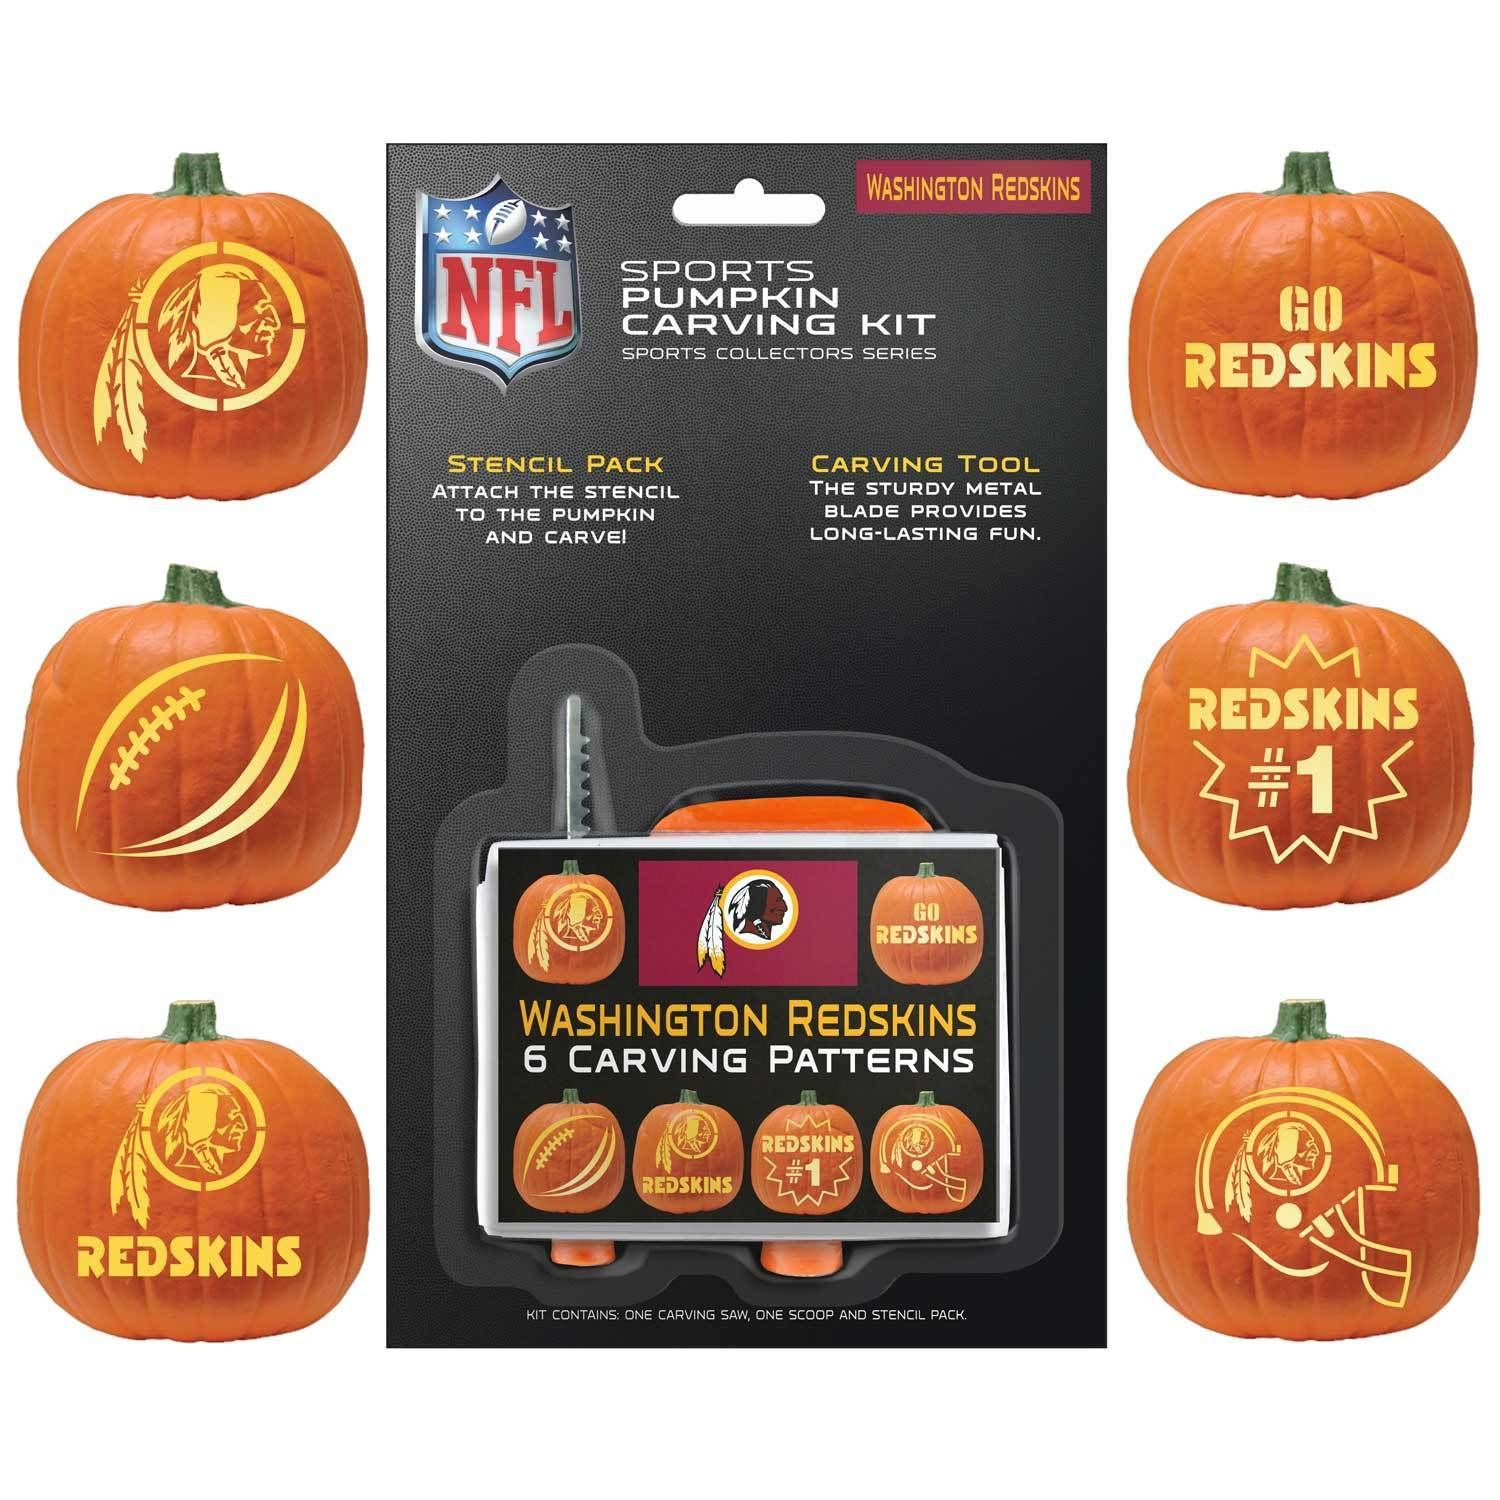 Washington Redskins Halloween Pumpkin Carving Kit NEW!Stencils for ...